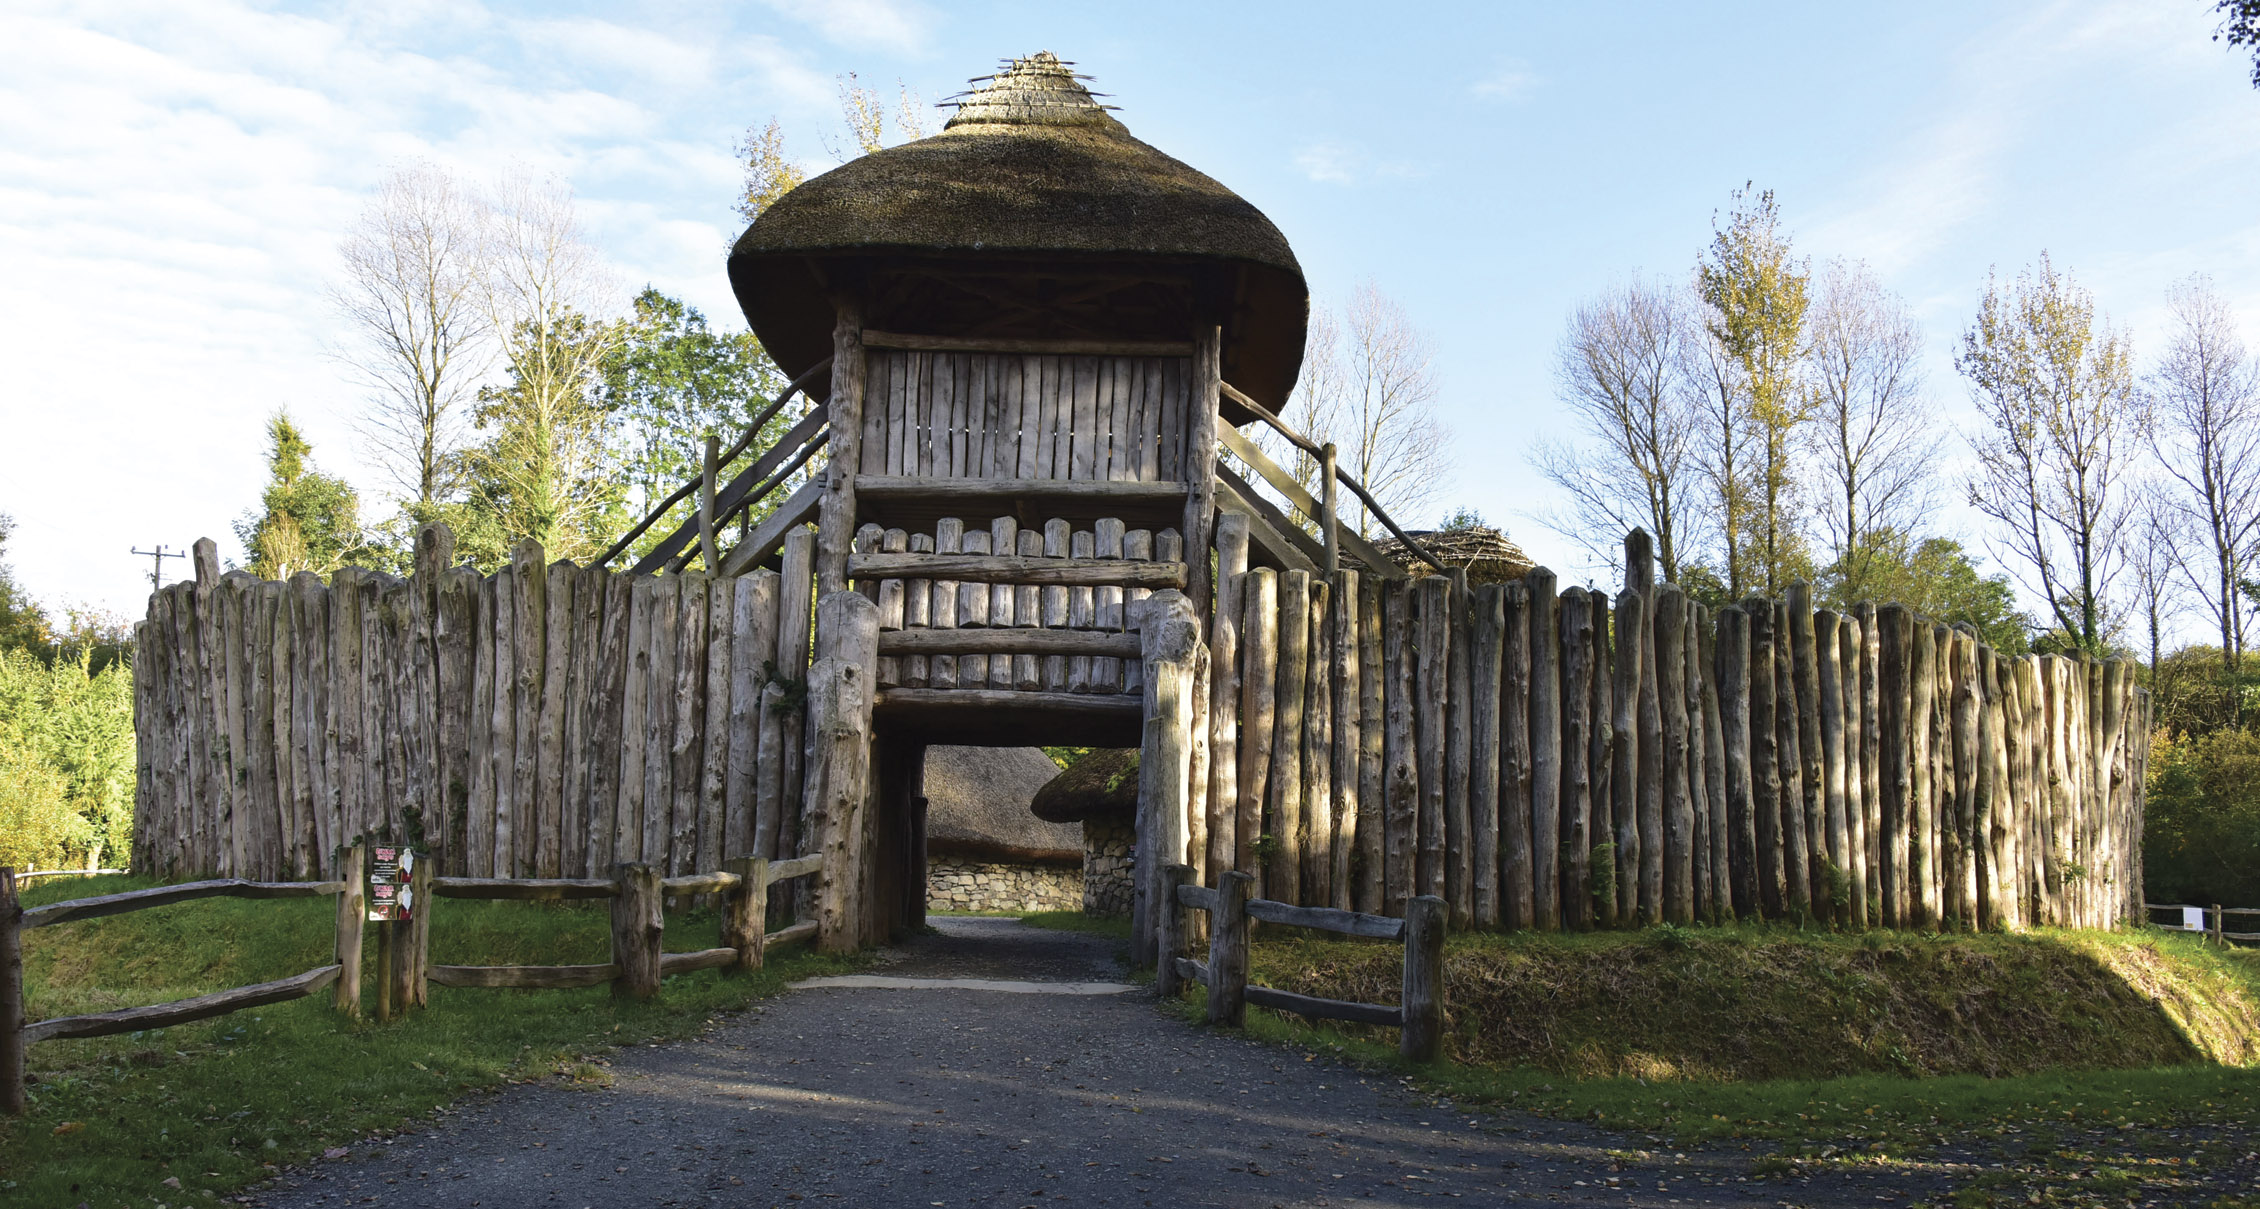 A replica of a 1,500-year-old Irish ringfort, where you can stay overnight and live as your long-ago ancestors did, situated in Wexford's Irish National Heritage Park.